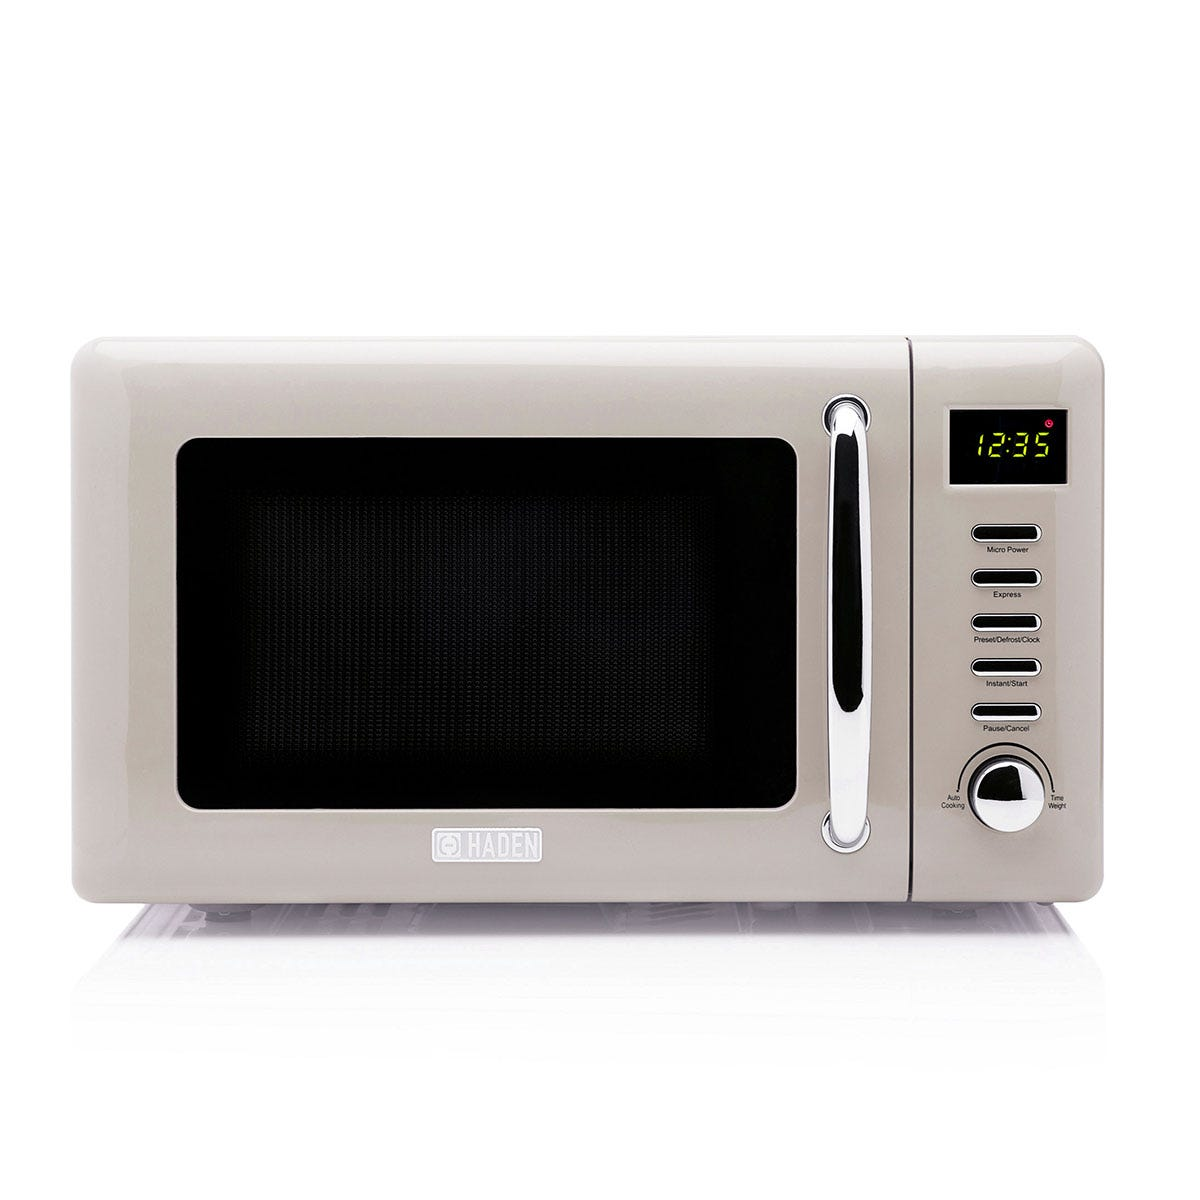 Haden 191212-A Cotswold 20L 800W Microwave - Putty